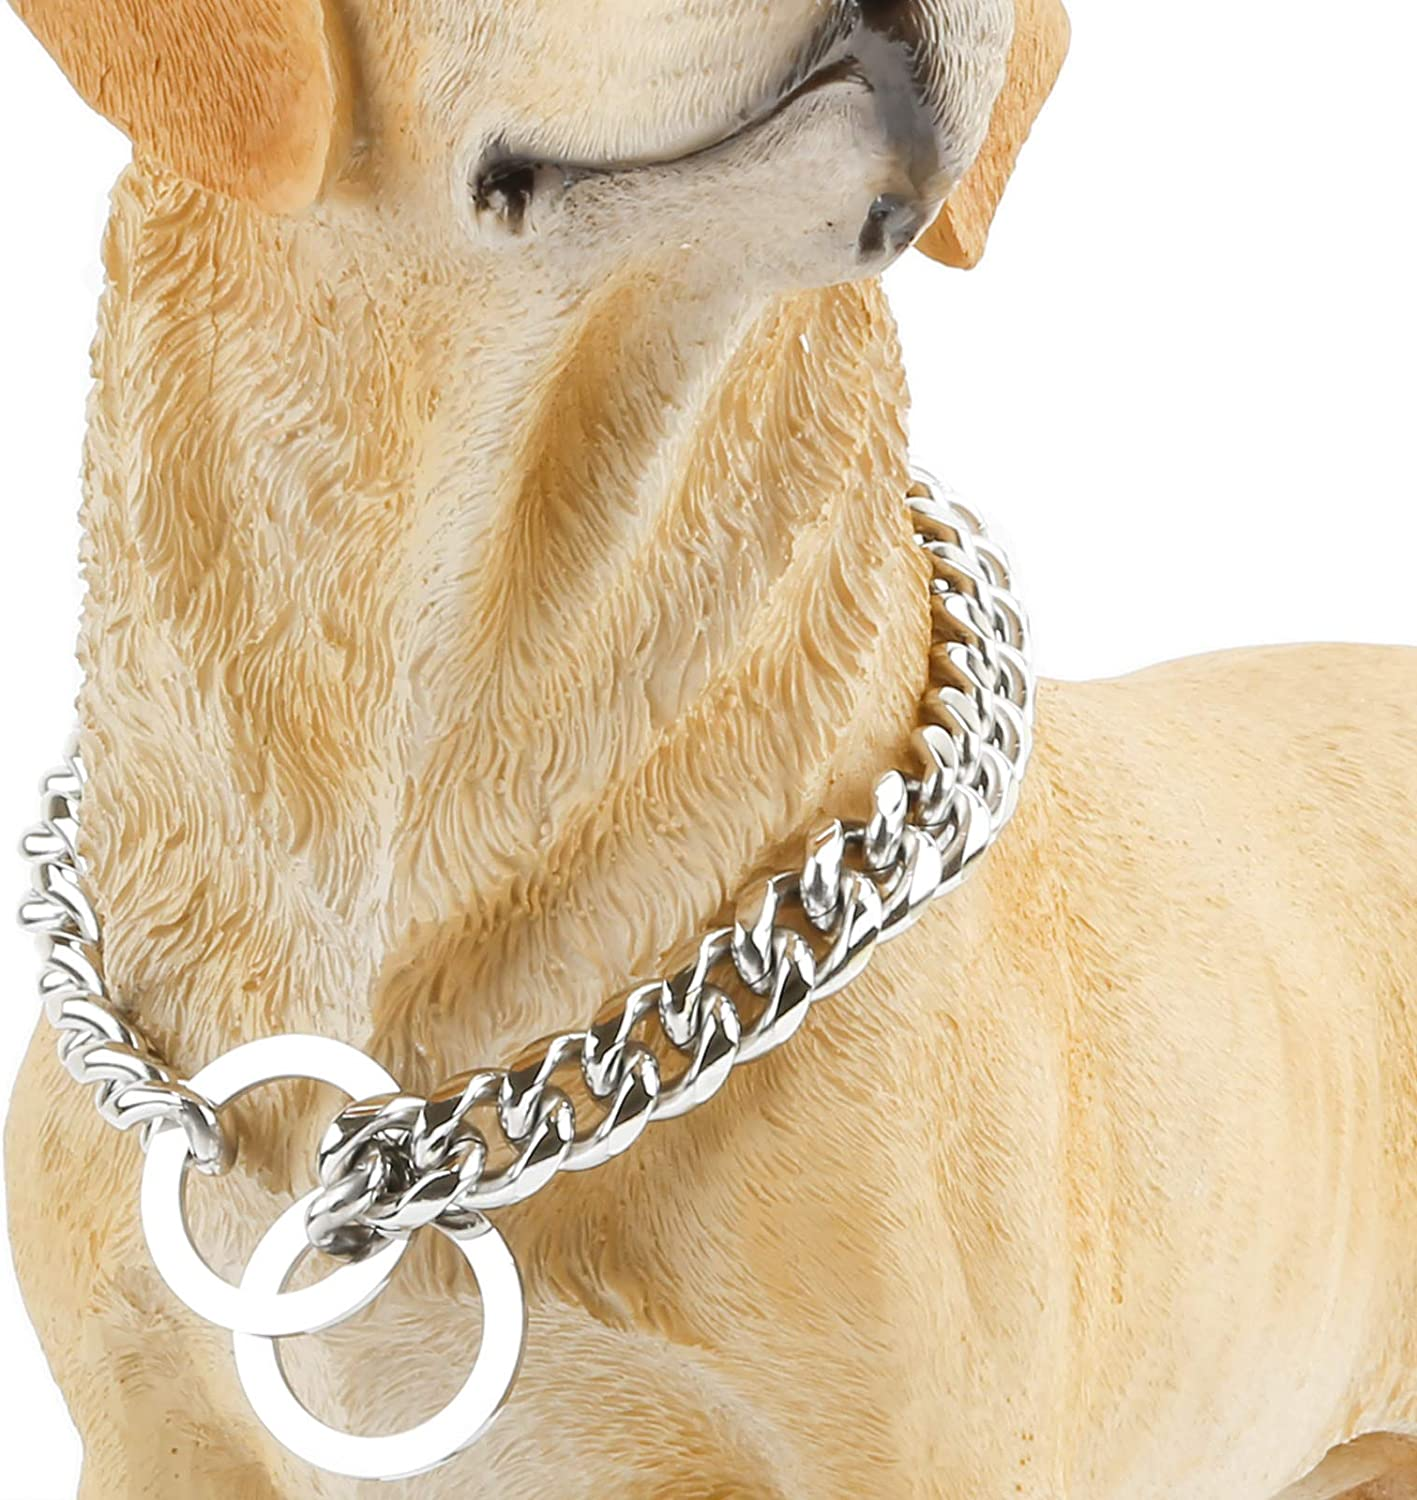 12//15mm Width 10-26 Long rulahomeware Heavy Thick Dog Gold Chain Gold Chain for Dogs Cool Style,Curb Link Dog Collar Collar de perro Dorado,Collar de perro